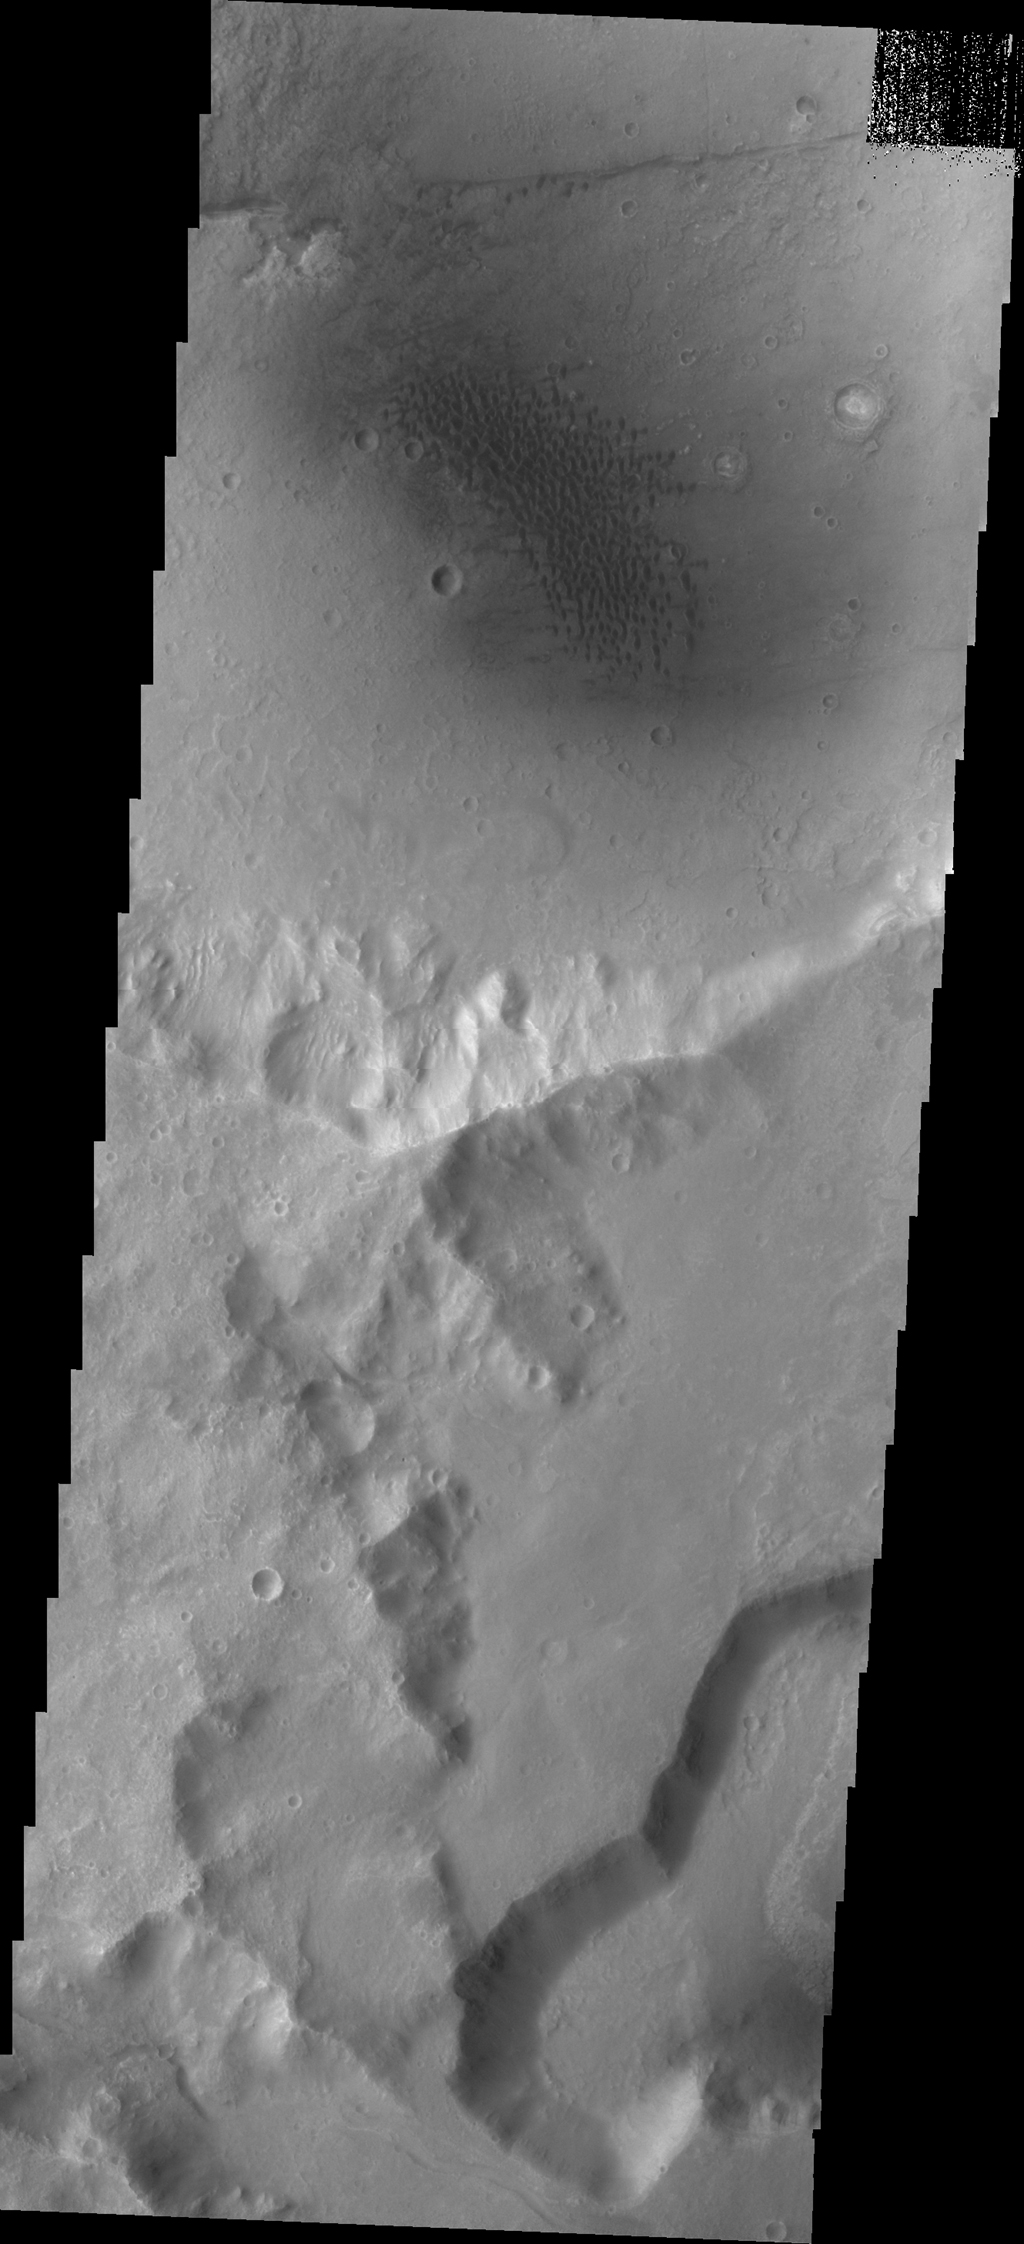 The dunes in this image captured by NASA's 2001 Mars Odyssey spacecraft are located in an unnamed crater on the eastern margin of Tempe Terra.